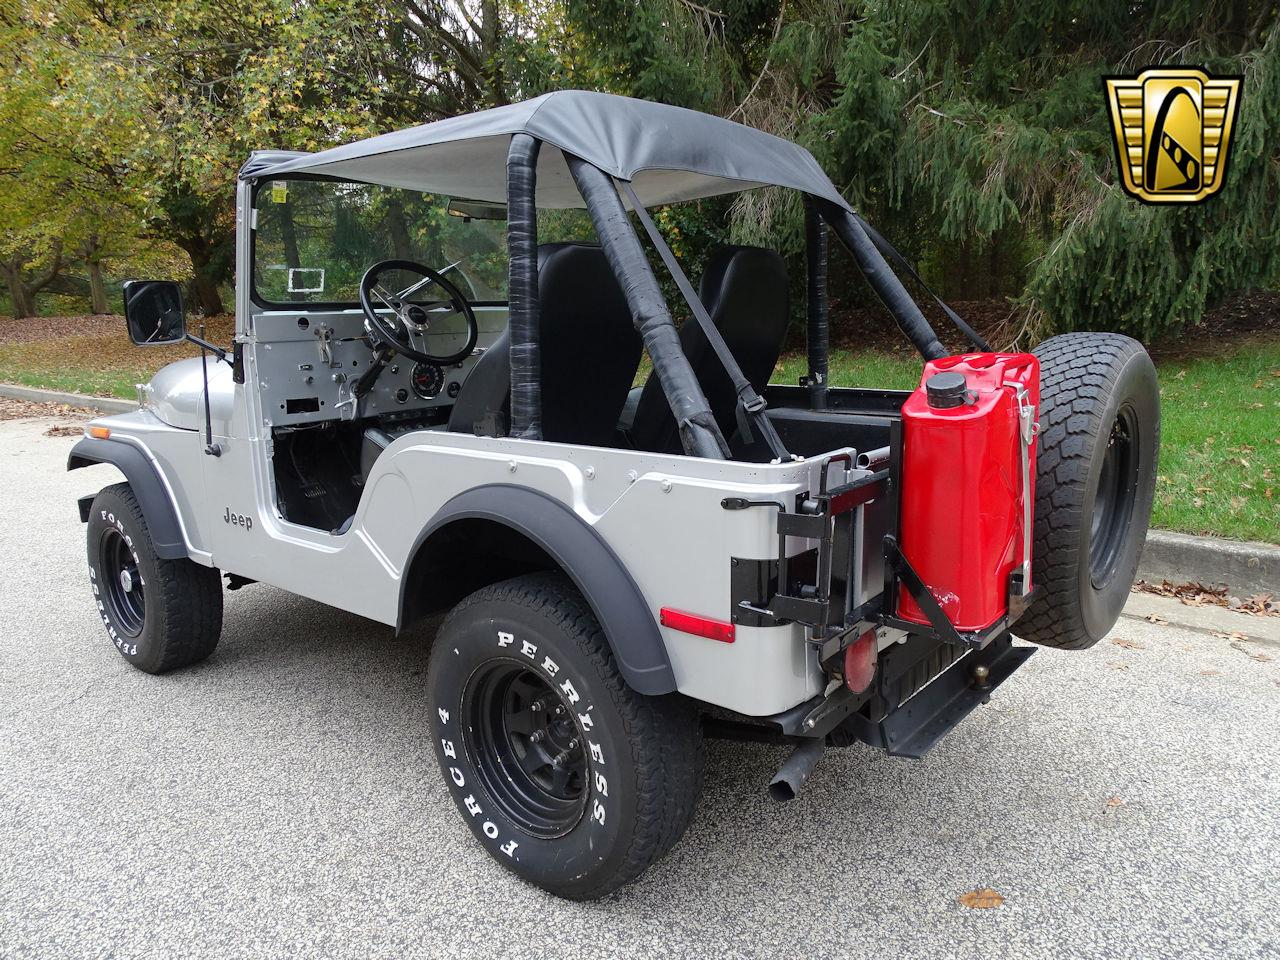 Large Picture of 1975 Jeep CJ5 located in West Deptford New Jersey - $14,995.00 - MDQG